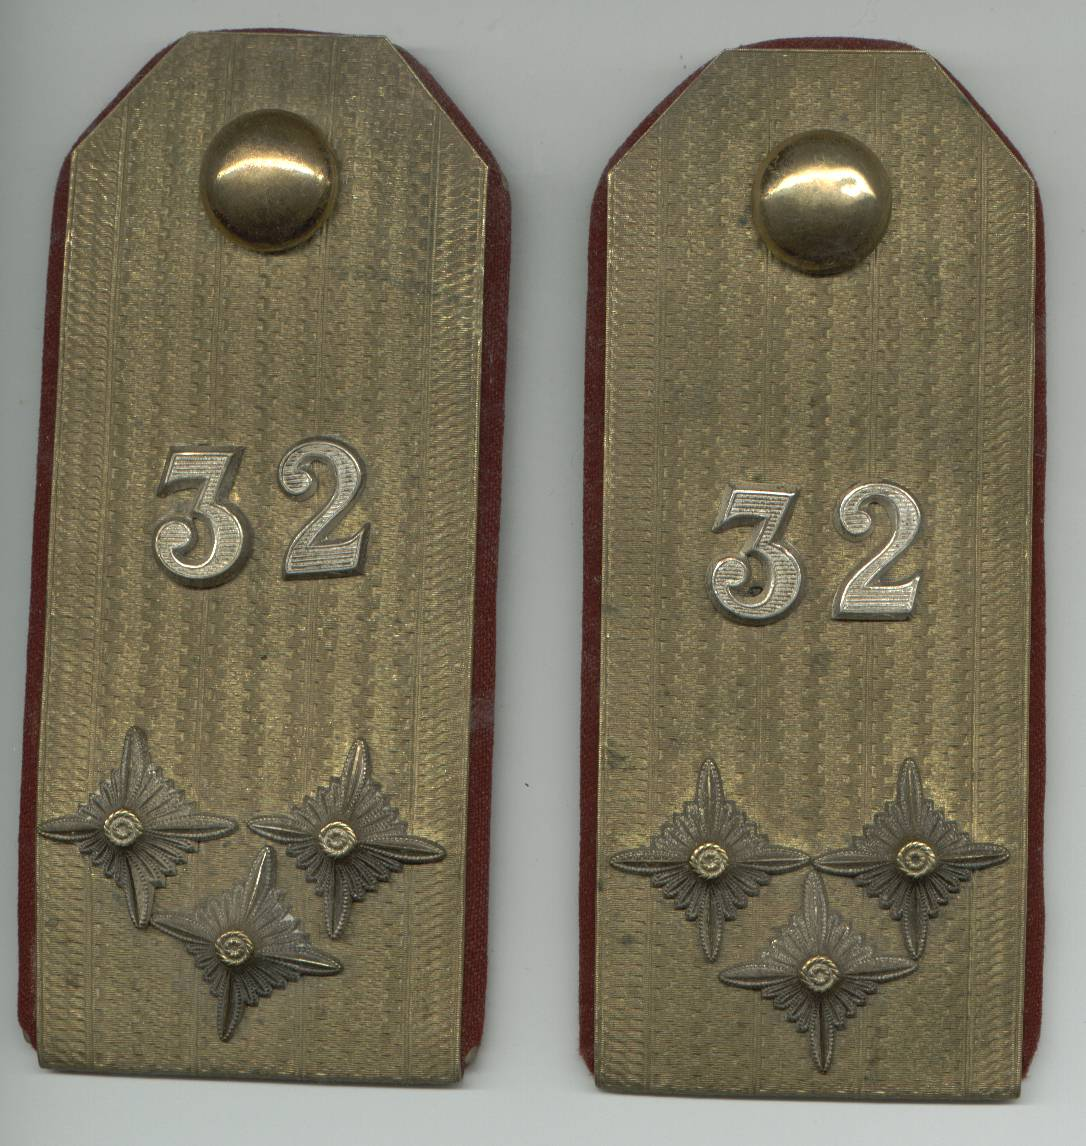 Recently Sold Items Listing 1890 SERBIA Royal infantry ARMY